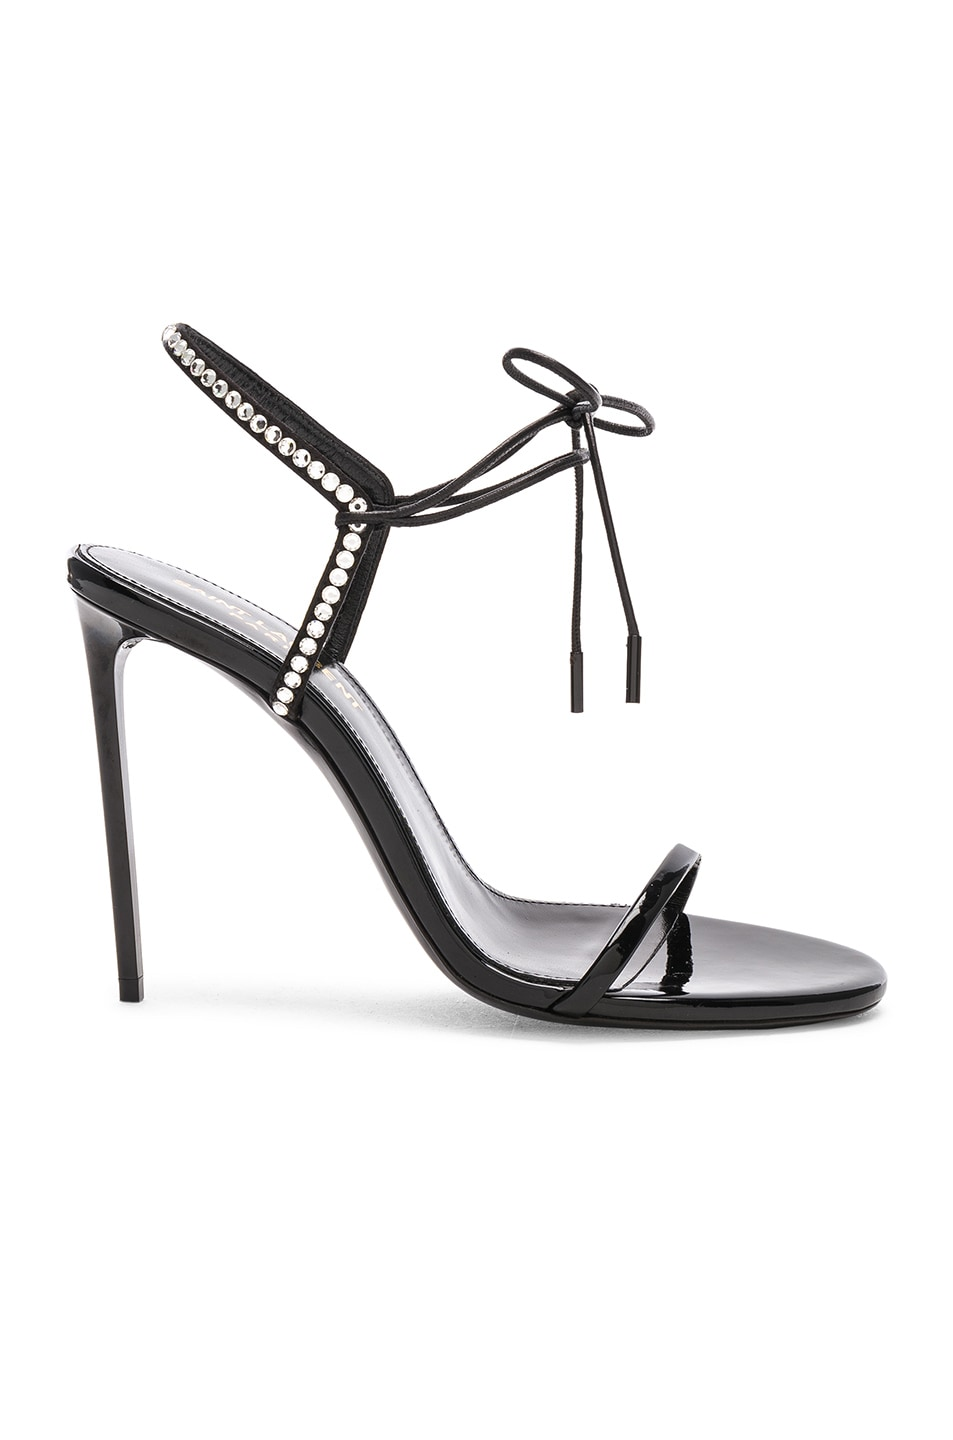 Image 1 of Saint Laurent Crystal Embellished Patent Leather Robin Sandals in Black